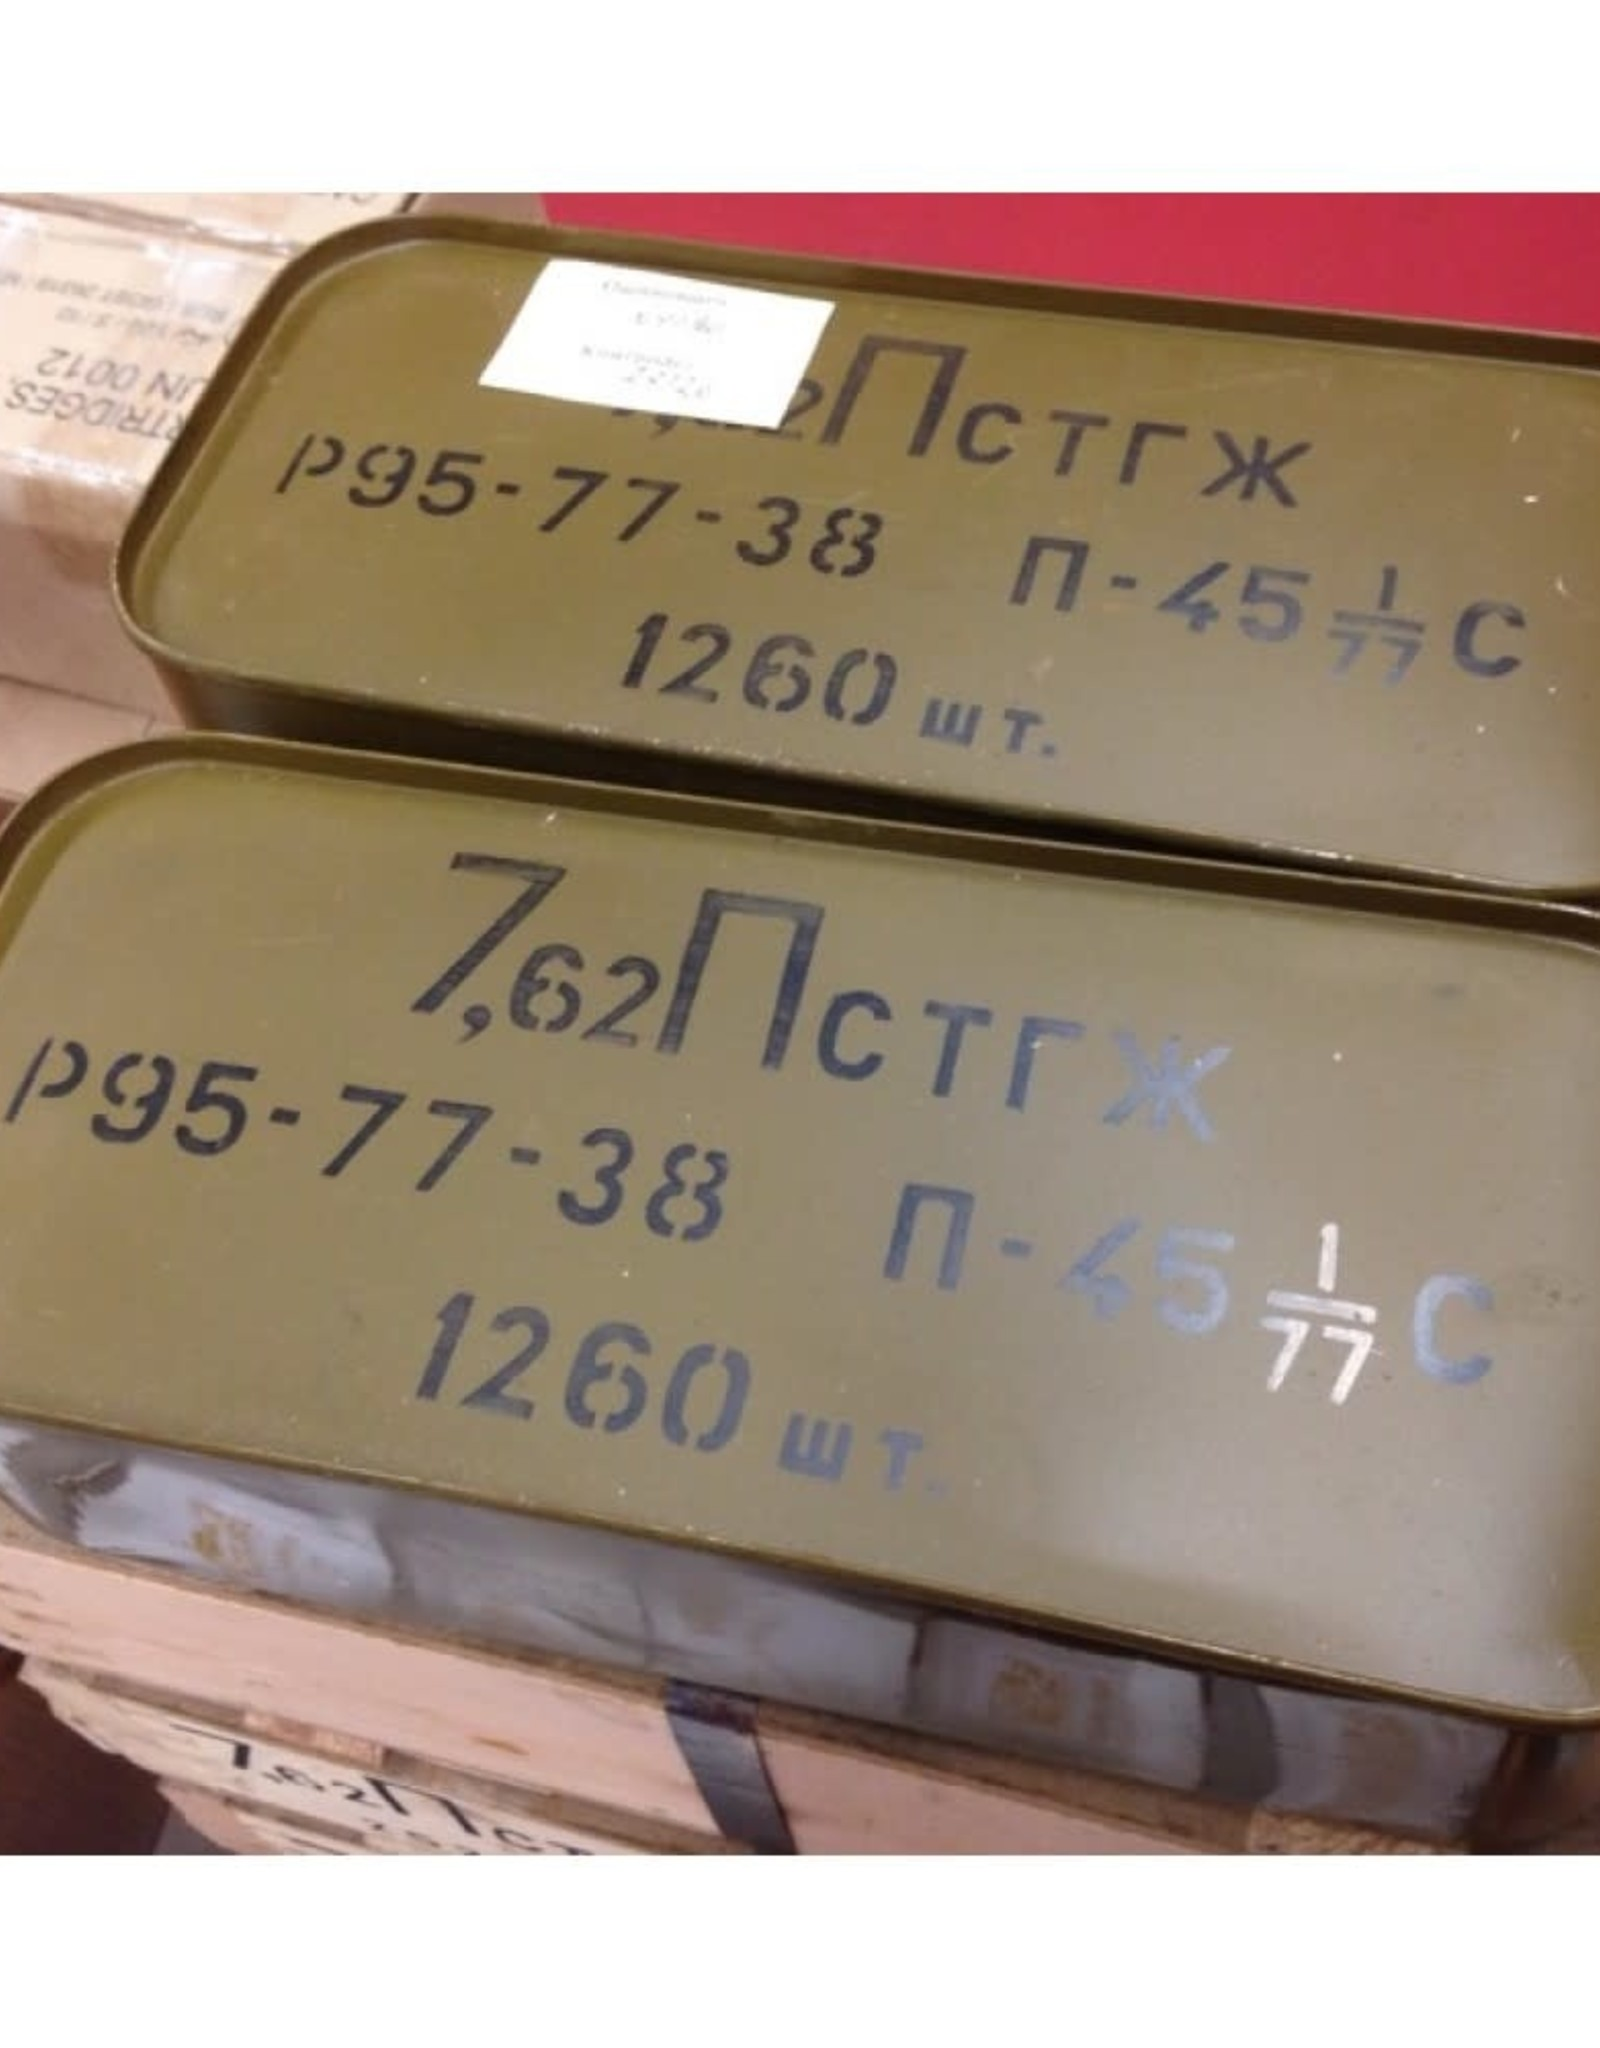 Sellier & Bellot 7.62x25 TOKO 2520 Rounds